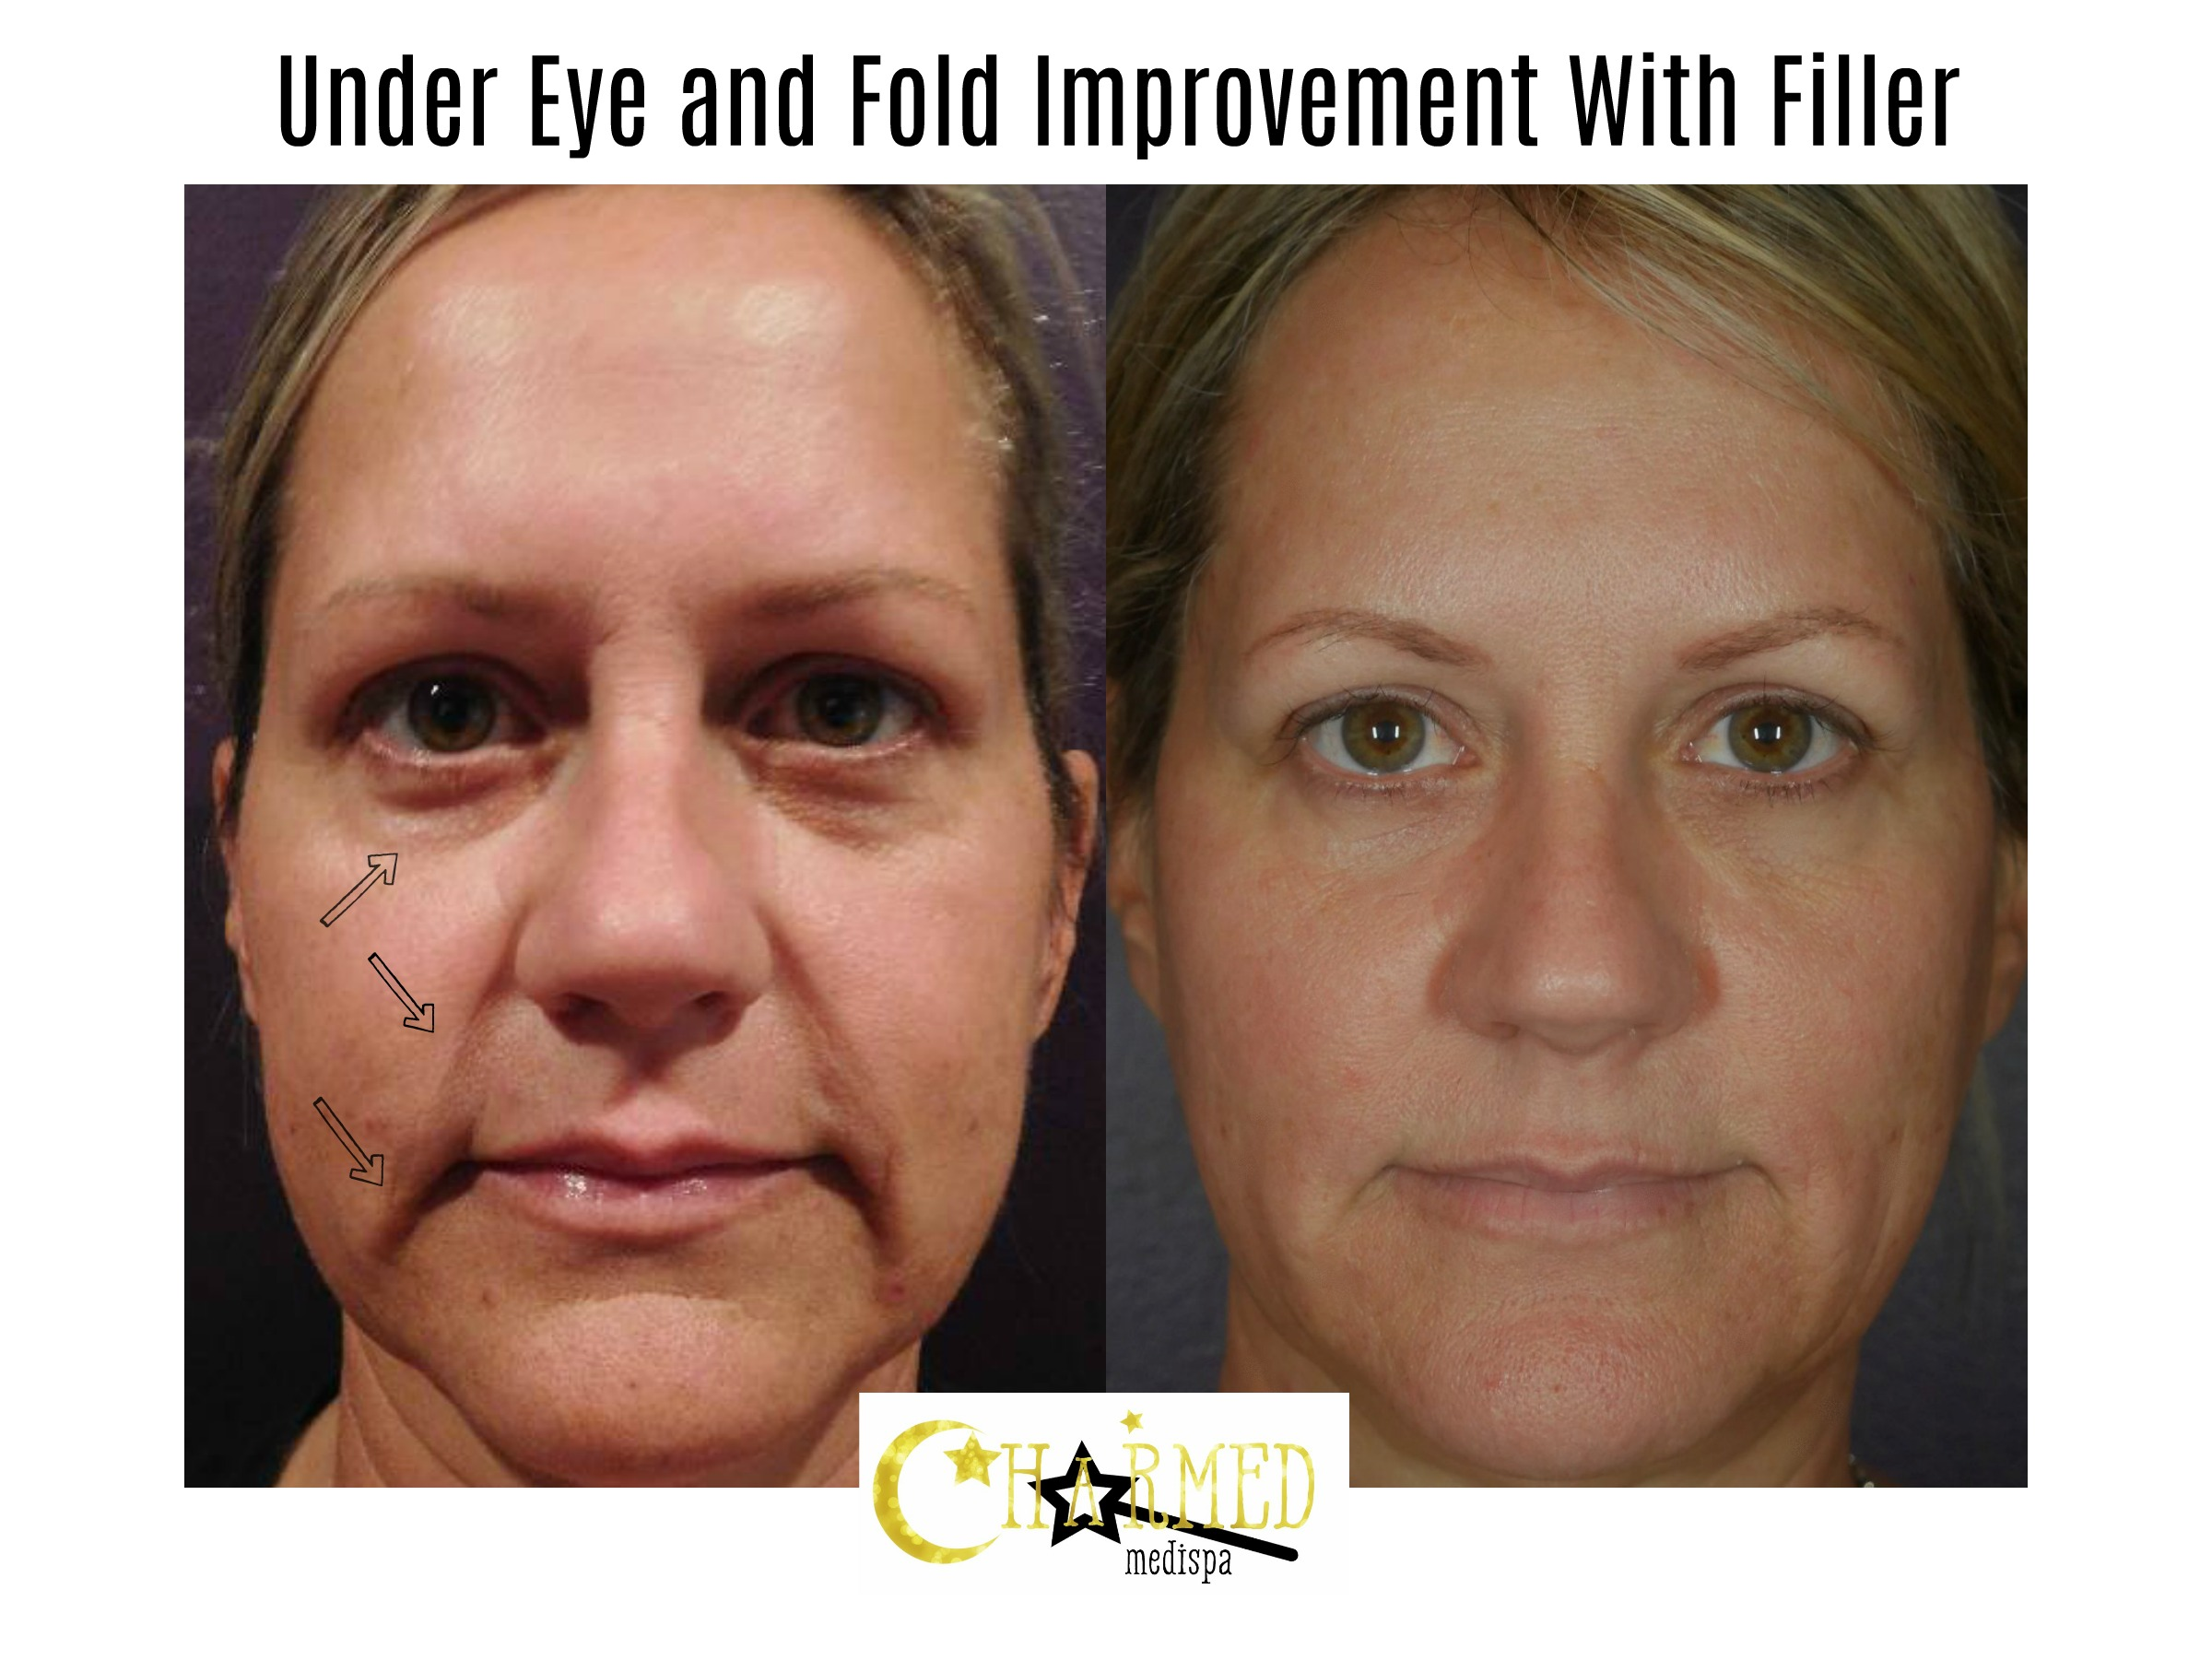 filler face under eye folds mouth delaware